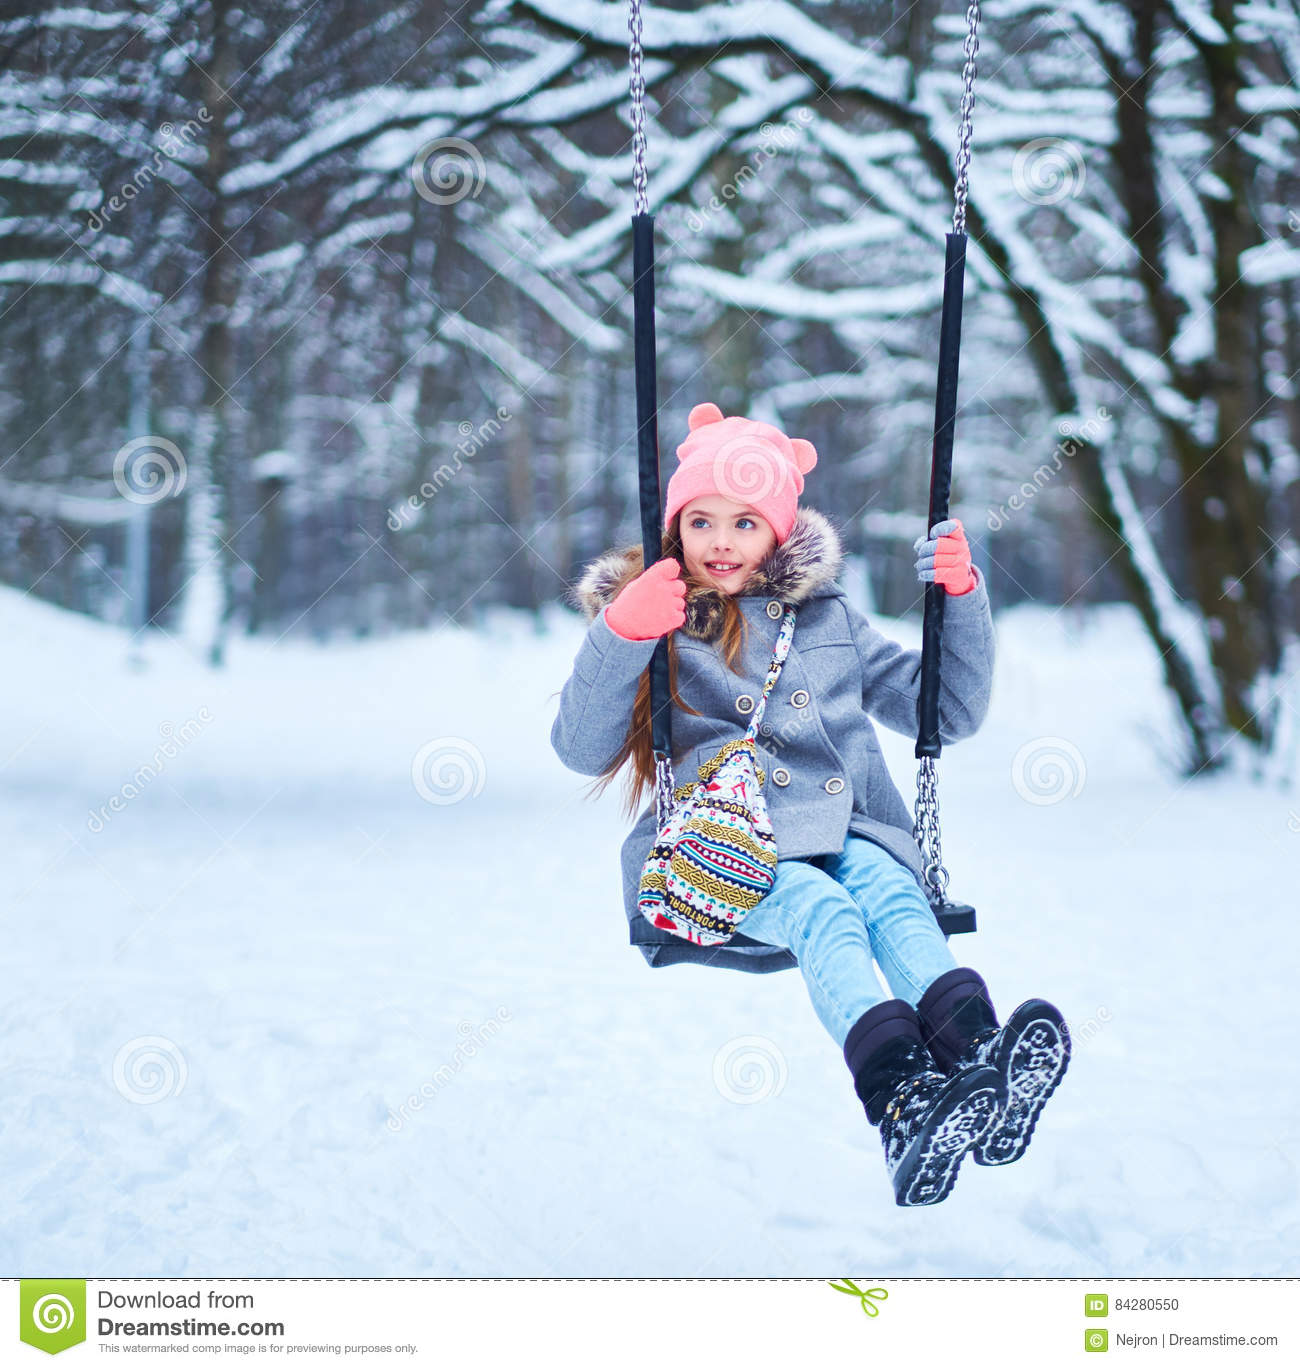 Outdoor Baby Swing >> Charming Little Girl On Swing In Snowy Winter Stock Photo - Image: 84280550